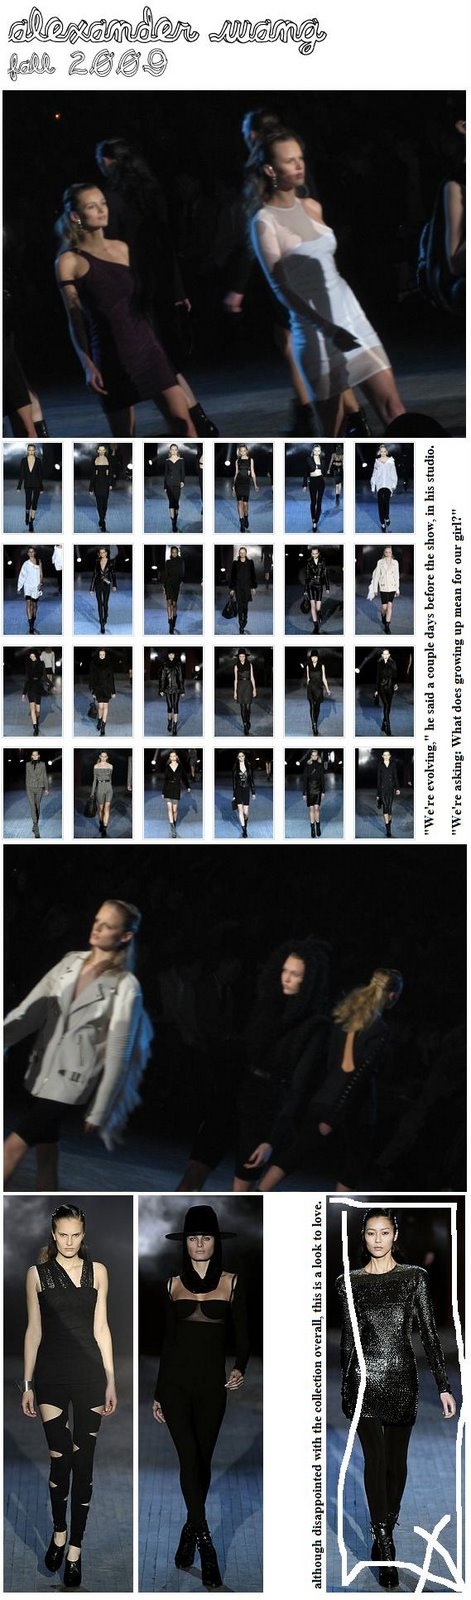 [alexander+wang+fall+2009+new+york.jpg]